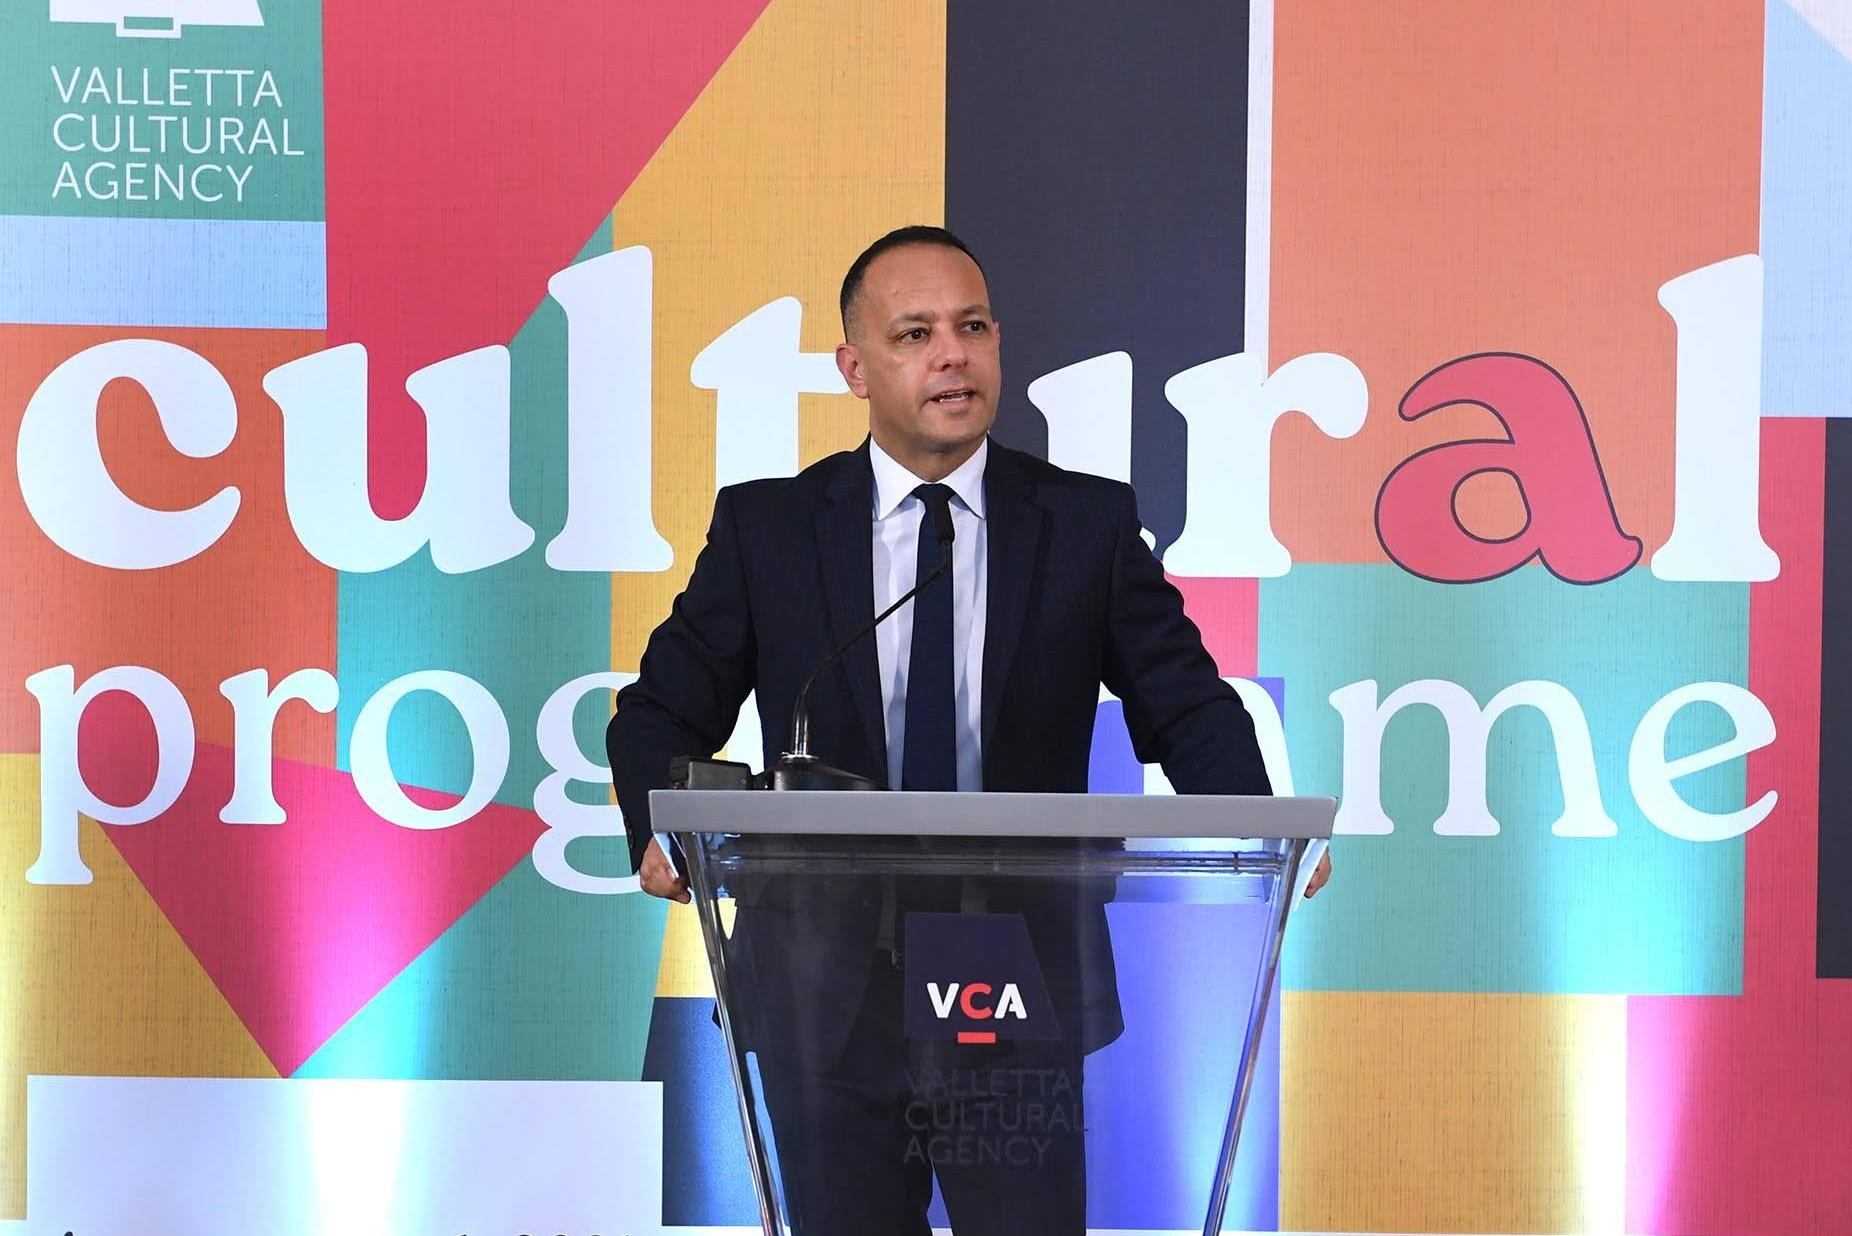 Jason Micallef said the platform was just like many others but said the VCA should have been consulted. Photo: DOI/Pierre Sammut